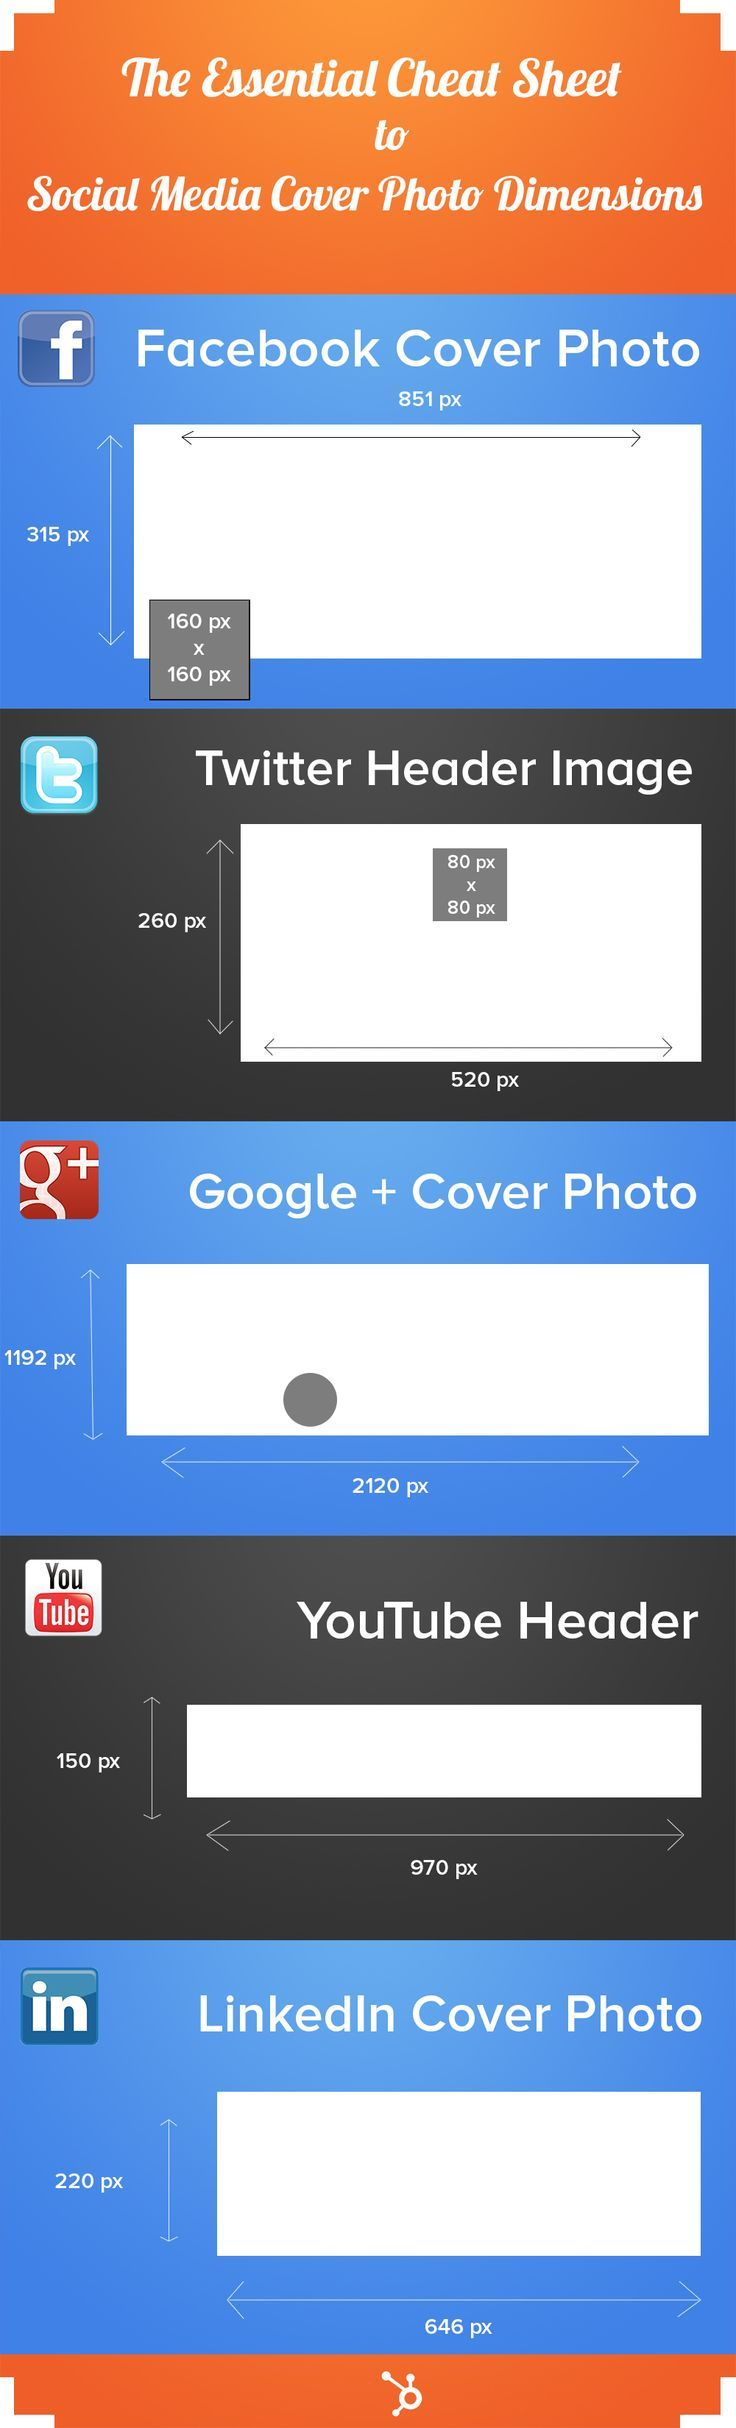 Cheat Sheet for Social Media Cover Photo Dimensions: